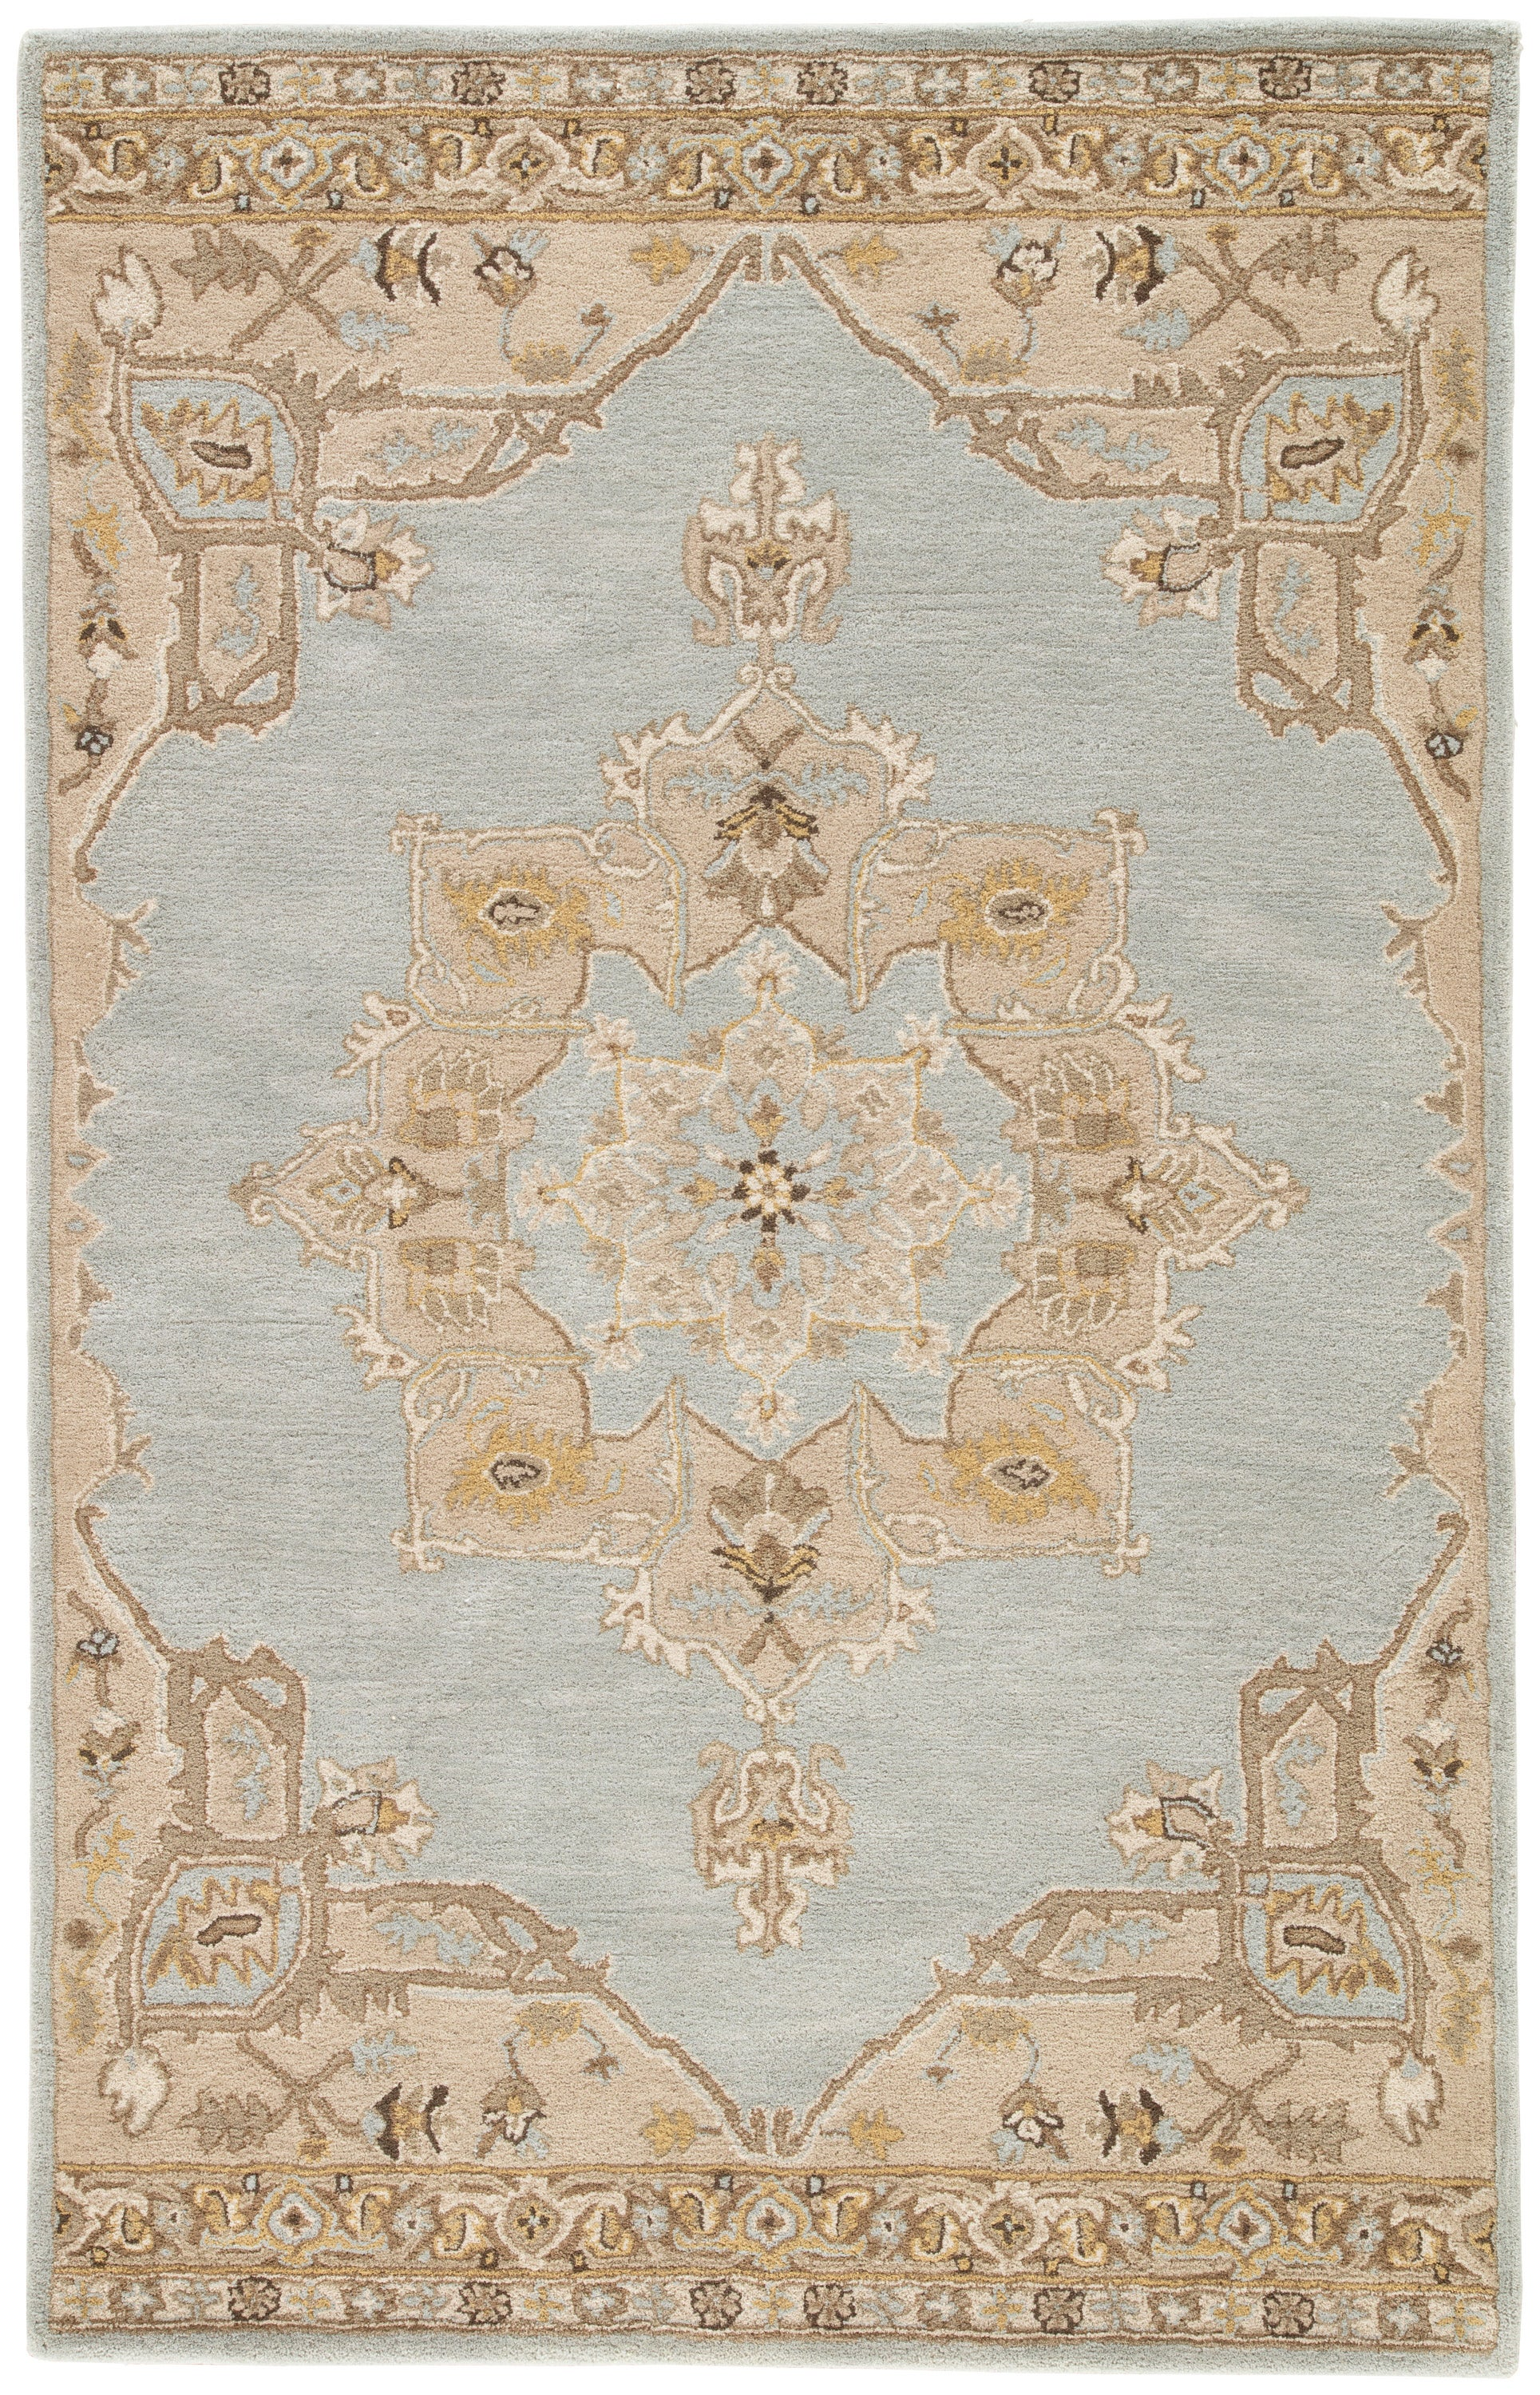 Rectangle Lightbrown Medallion Hand Tufted Wool Traditional & Oriental recommended for Bedroom, Bathroom, Dining Room, Office, Hallway, Living Room